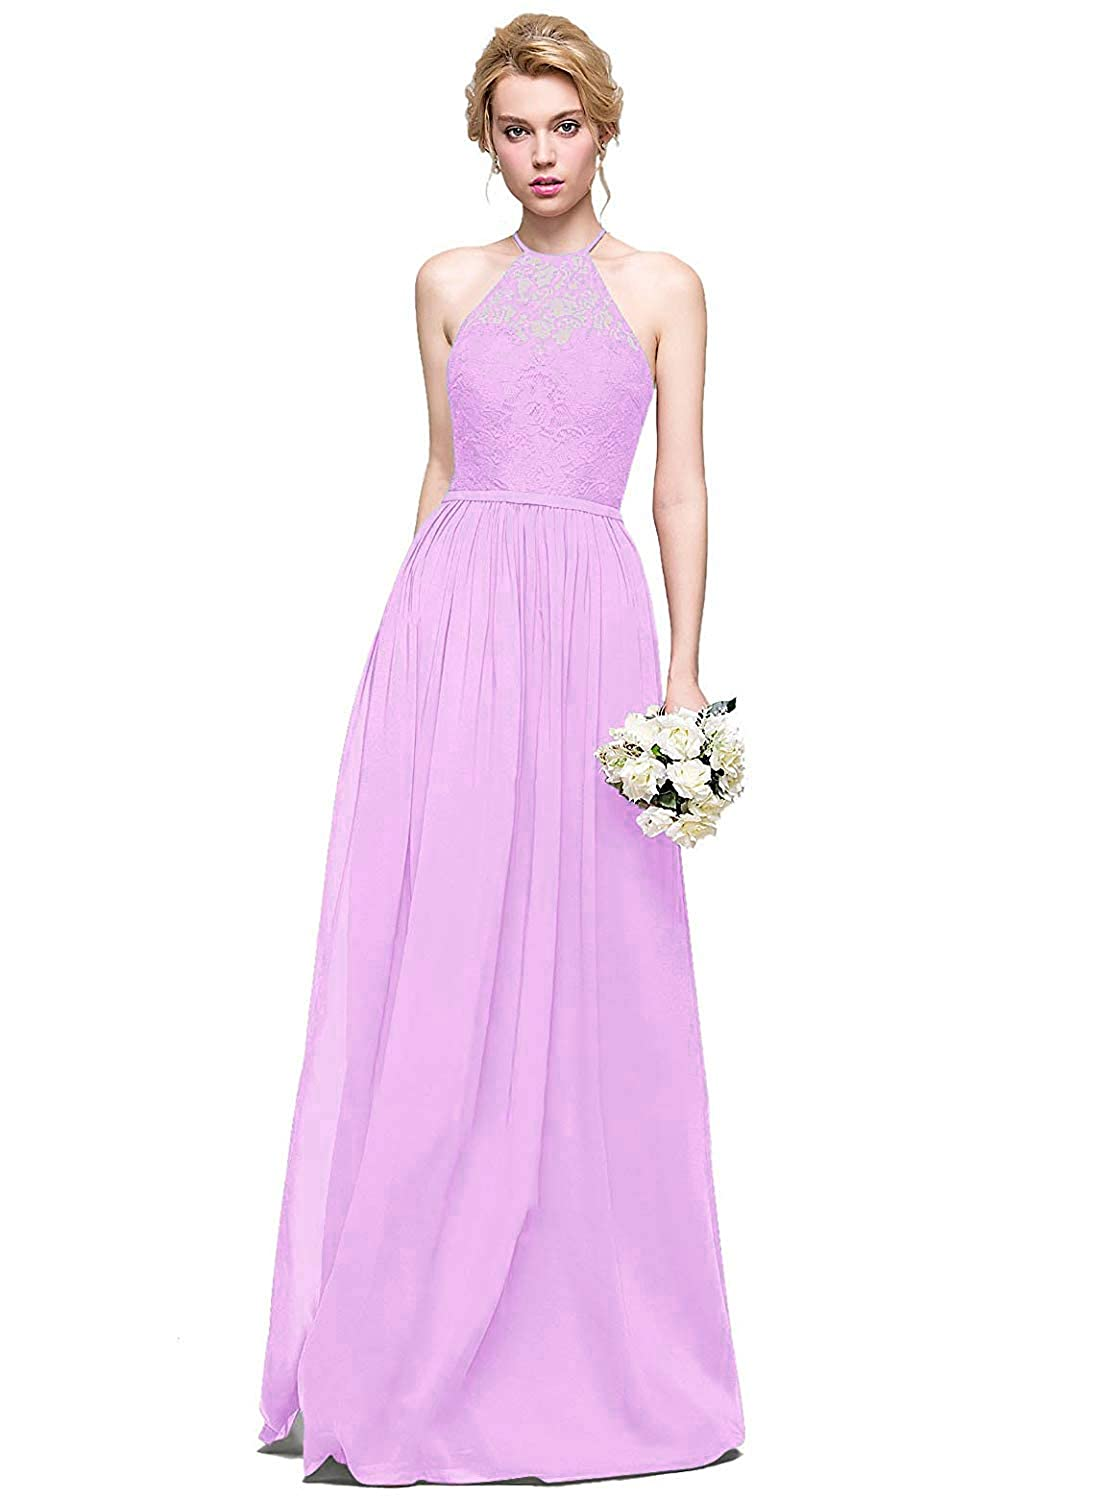 Lavender Halter Lace Sweetheart Neck Bridesmaid Dresses Long Prom Evening Gown